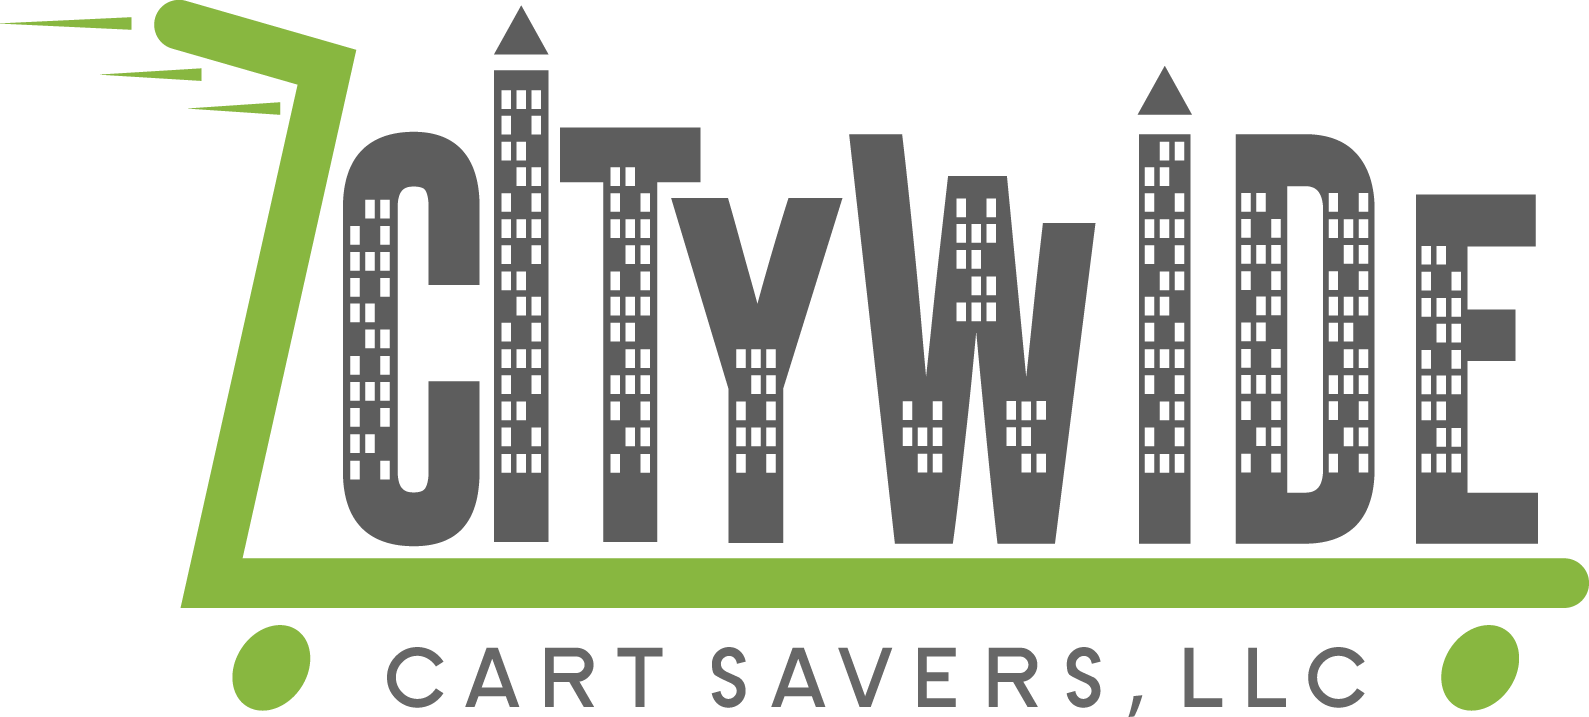 CityWide Cart Savers, LLC